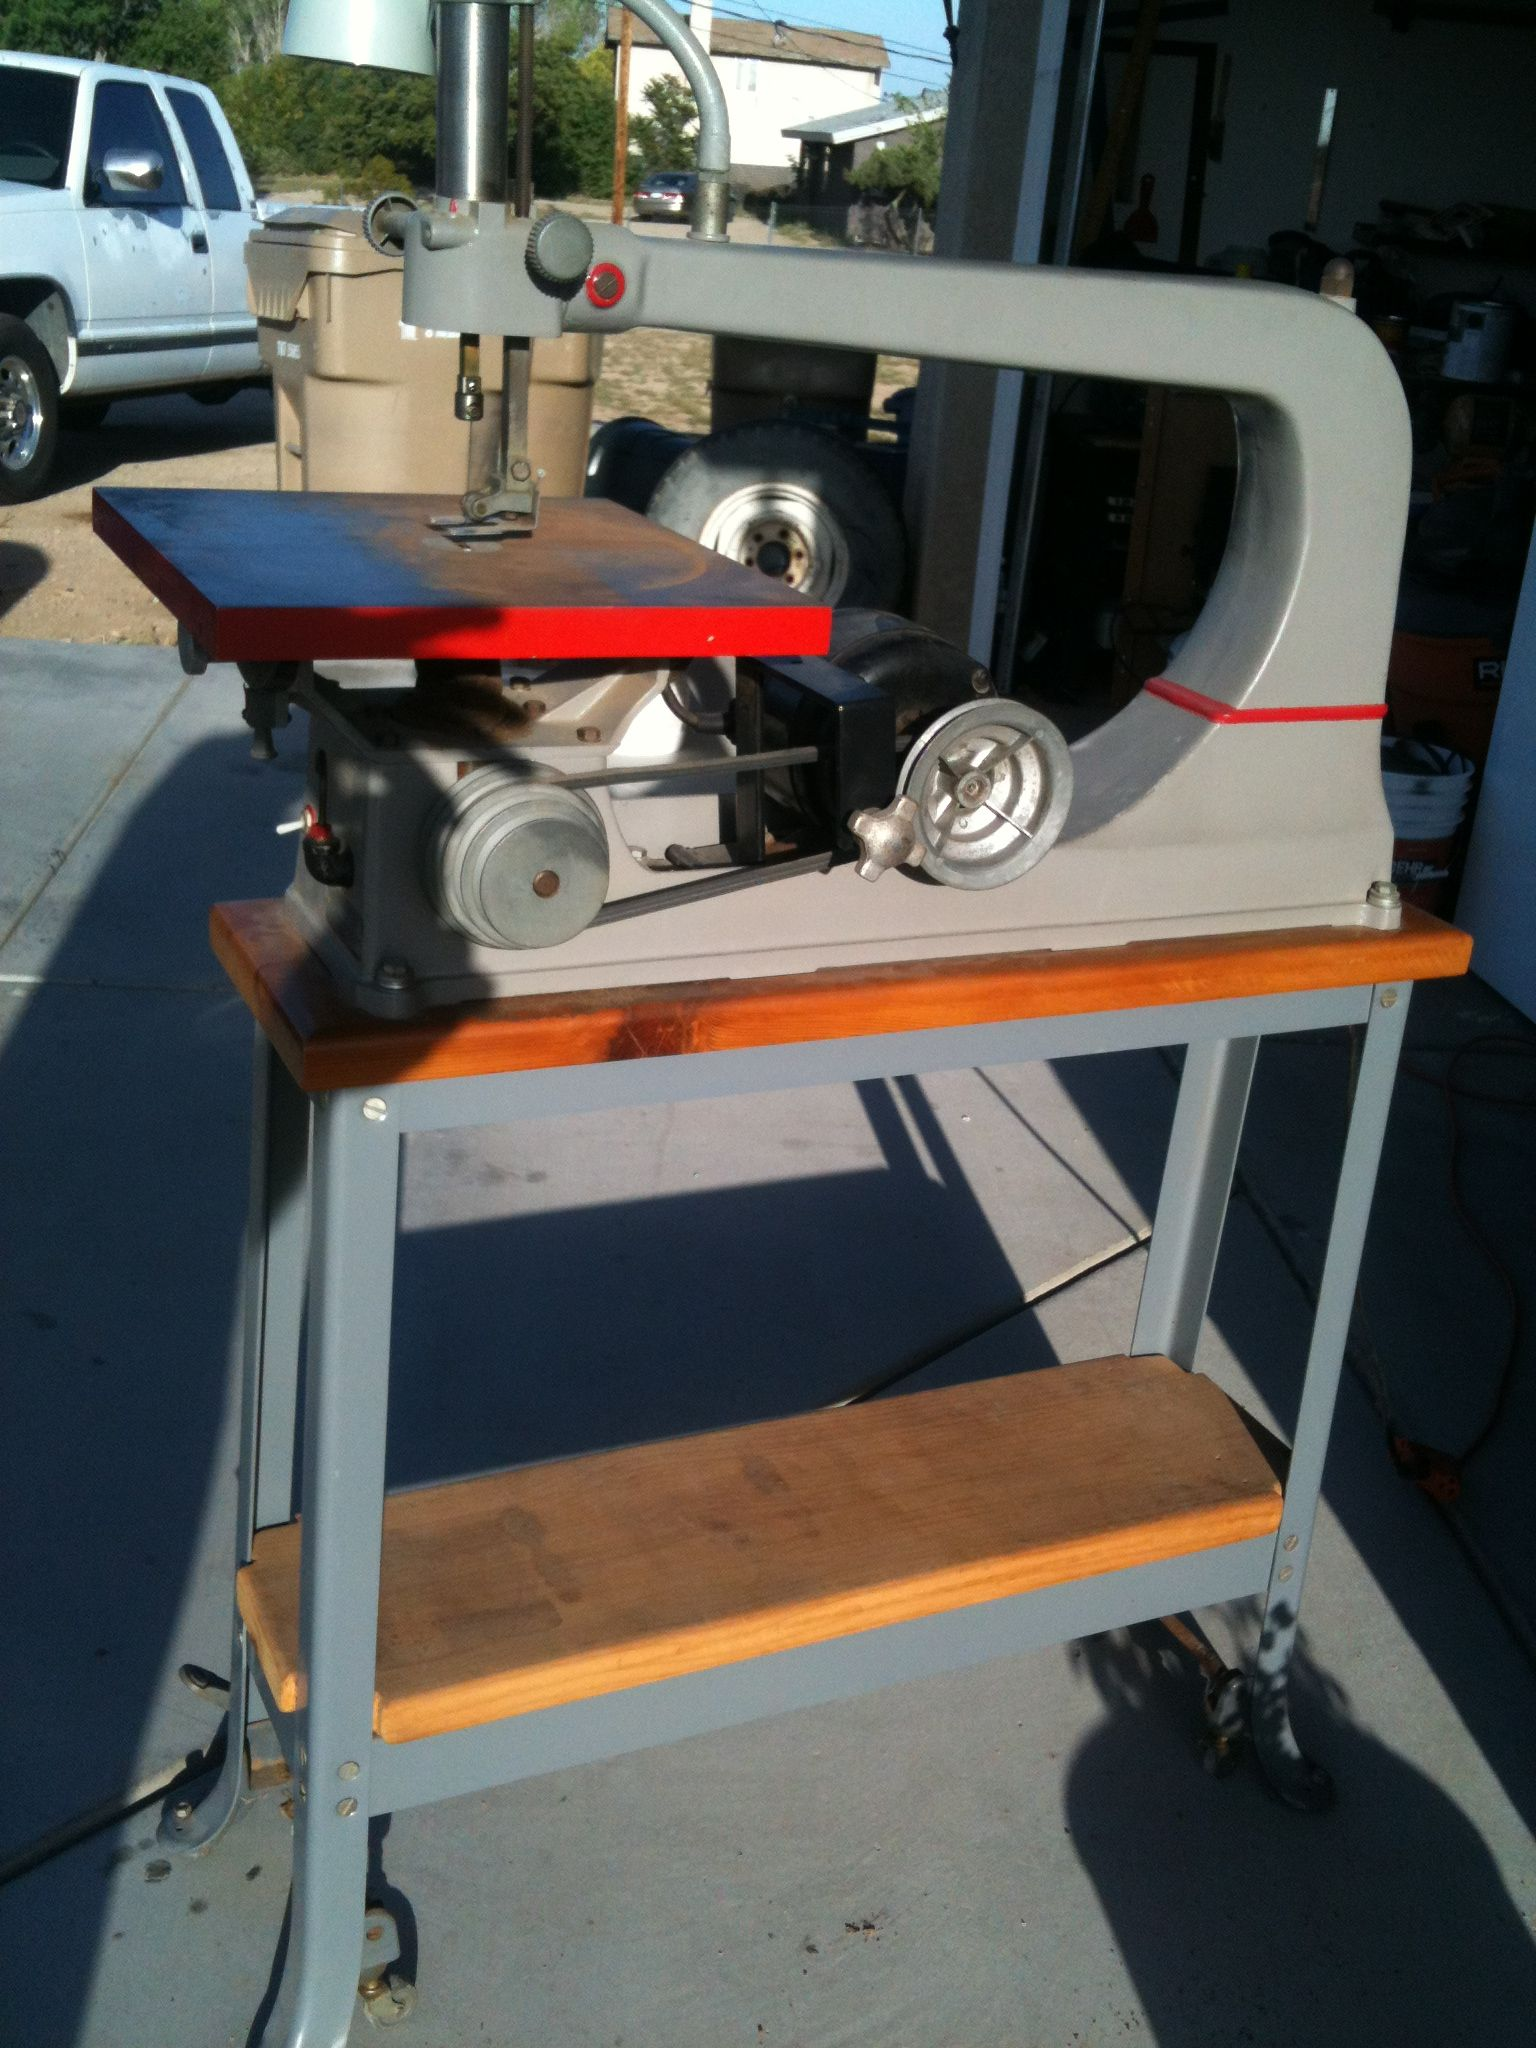 Jim's 1930's Totally Restored Craftsman Scroll / Jig Saw, Model 130.0404,  and Original Stand With The Lamp and Lifting Wheel Feet.